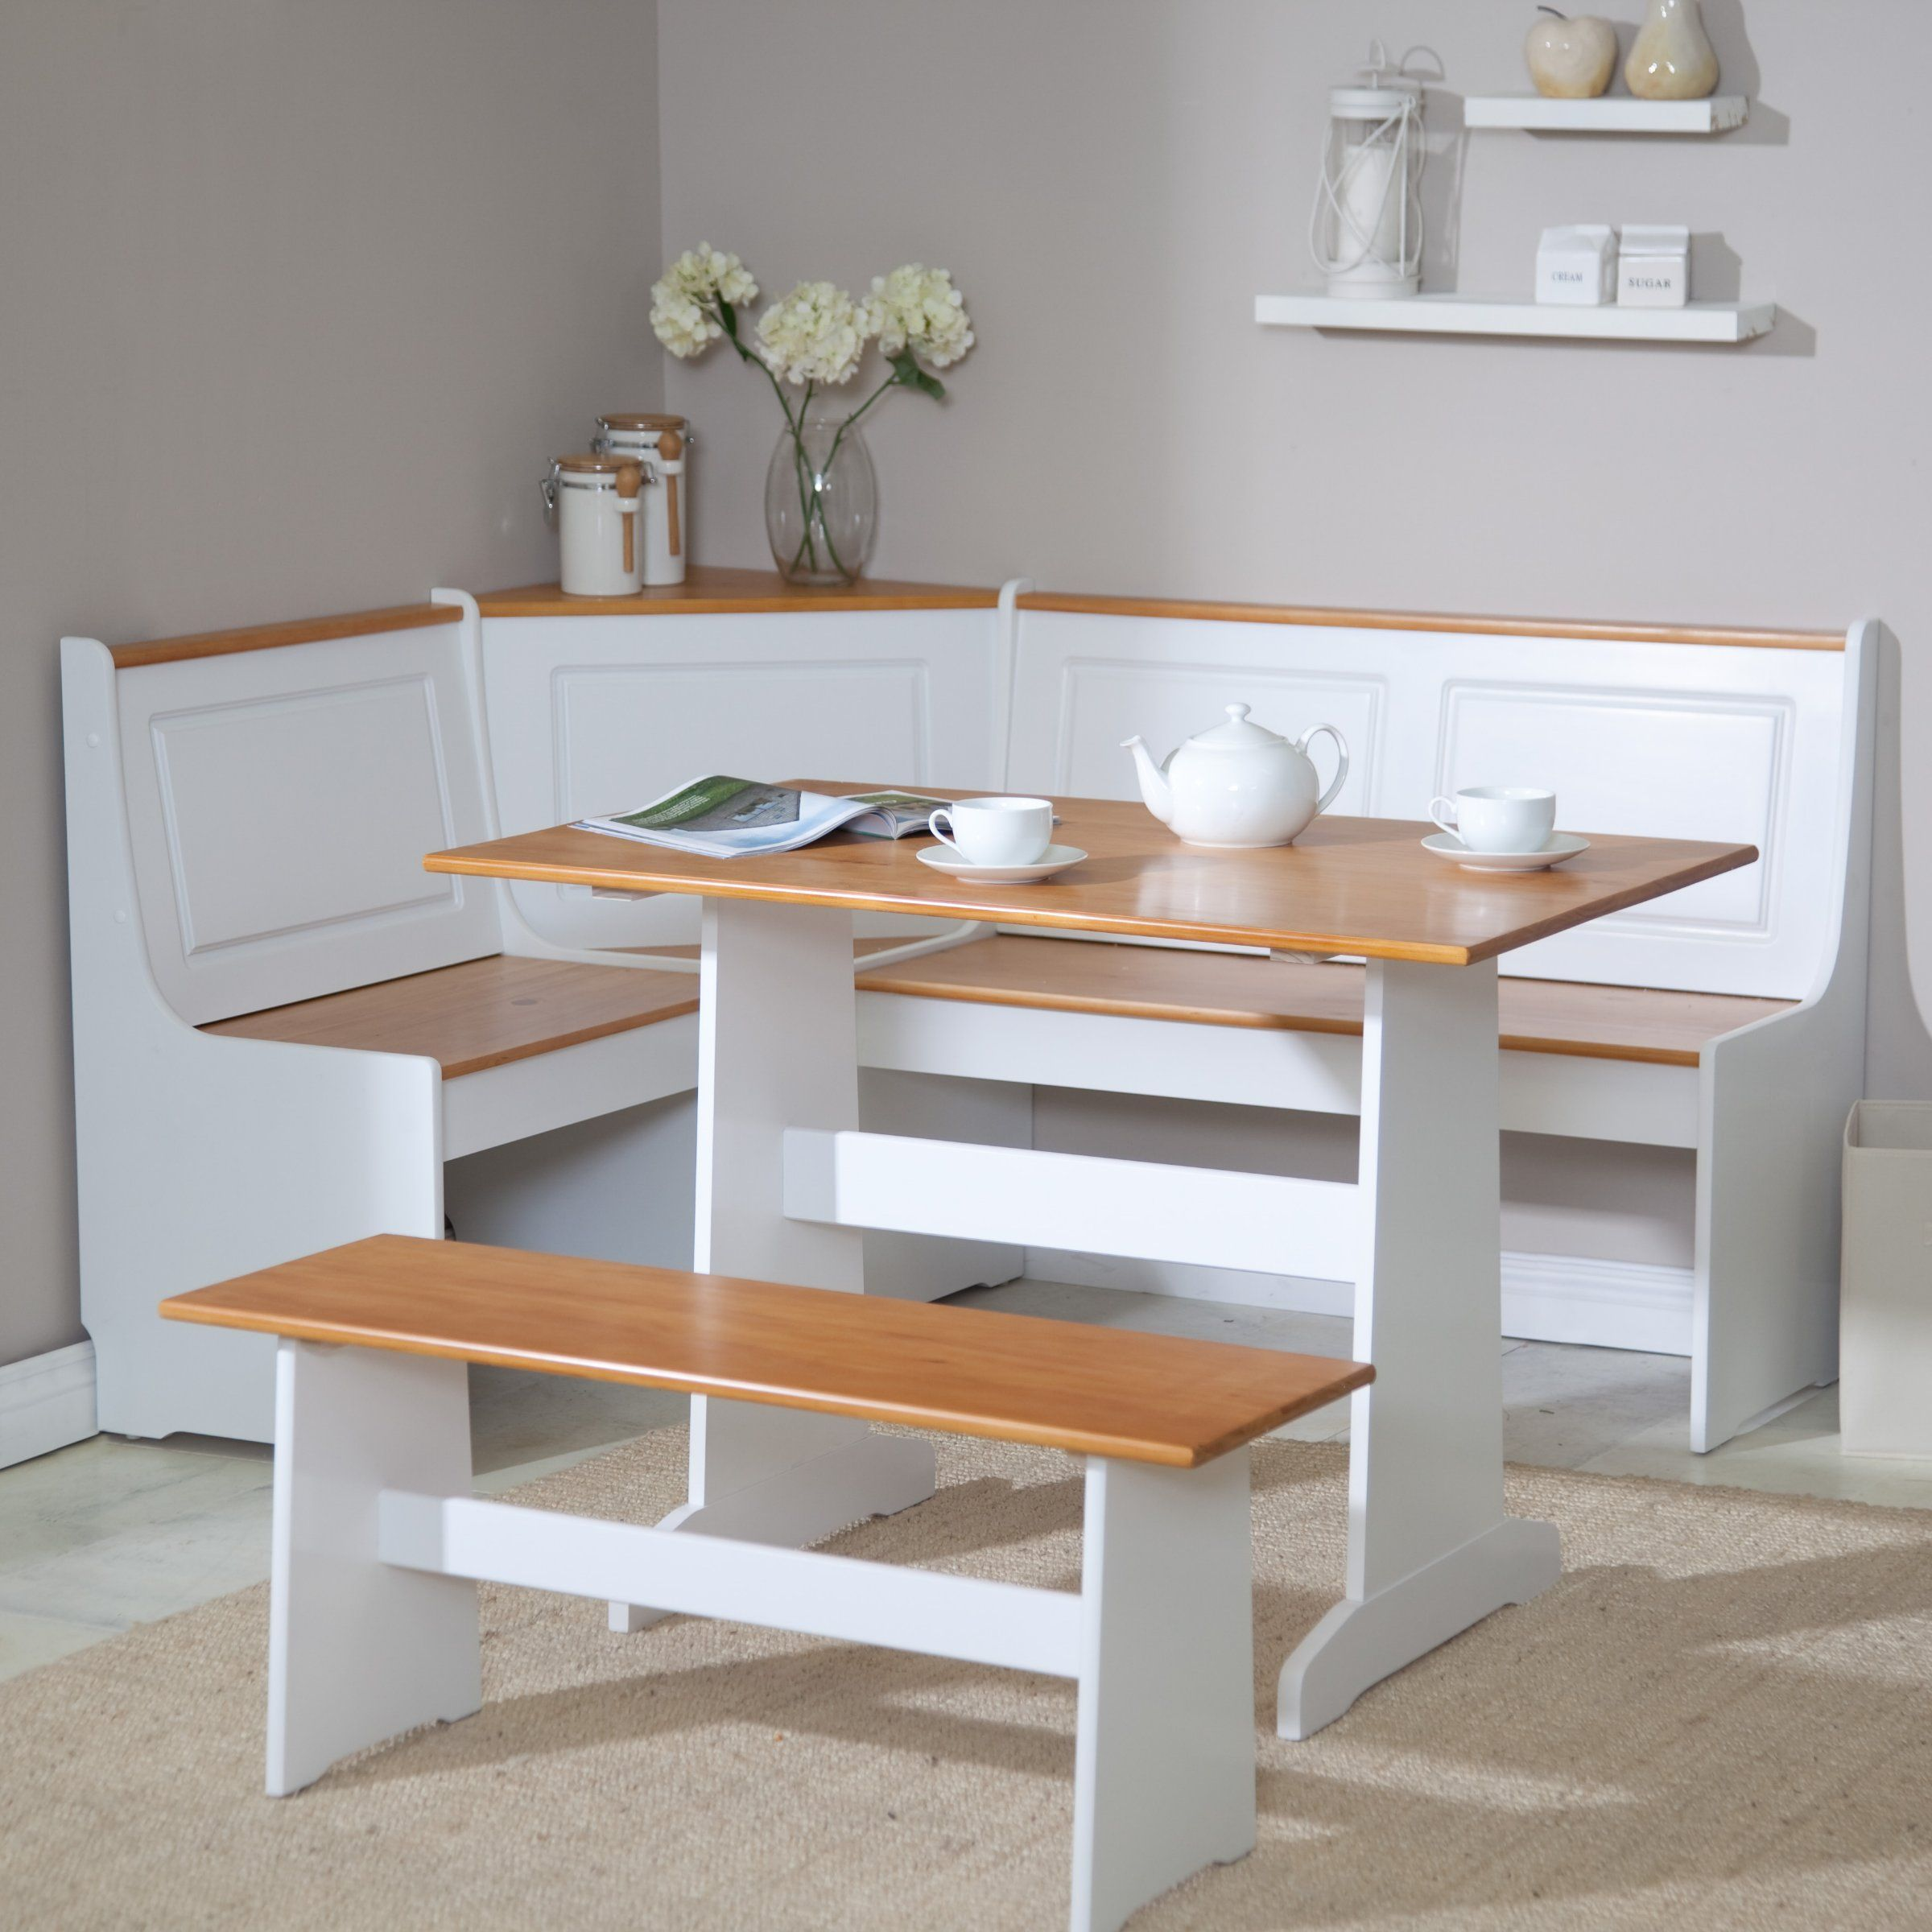 Kitchen Furniture Corner: Wow! 30 Space-Saving Corner Breakfast Nook Furniture Sets